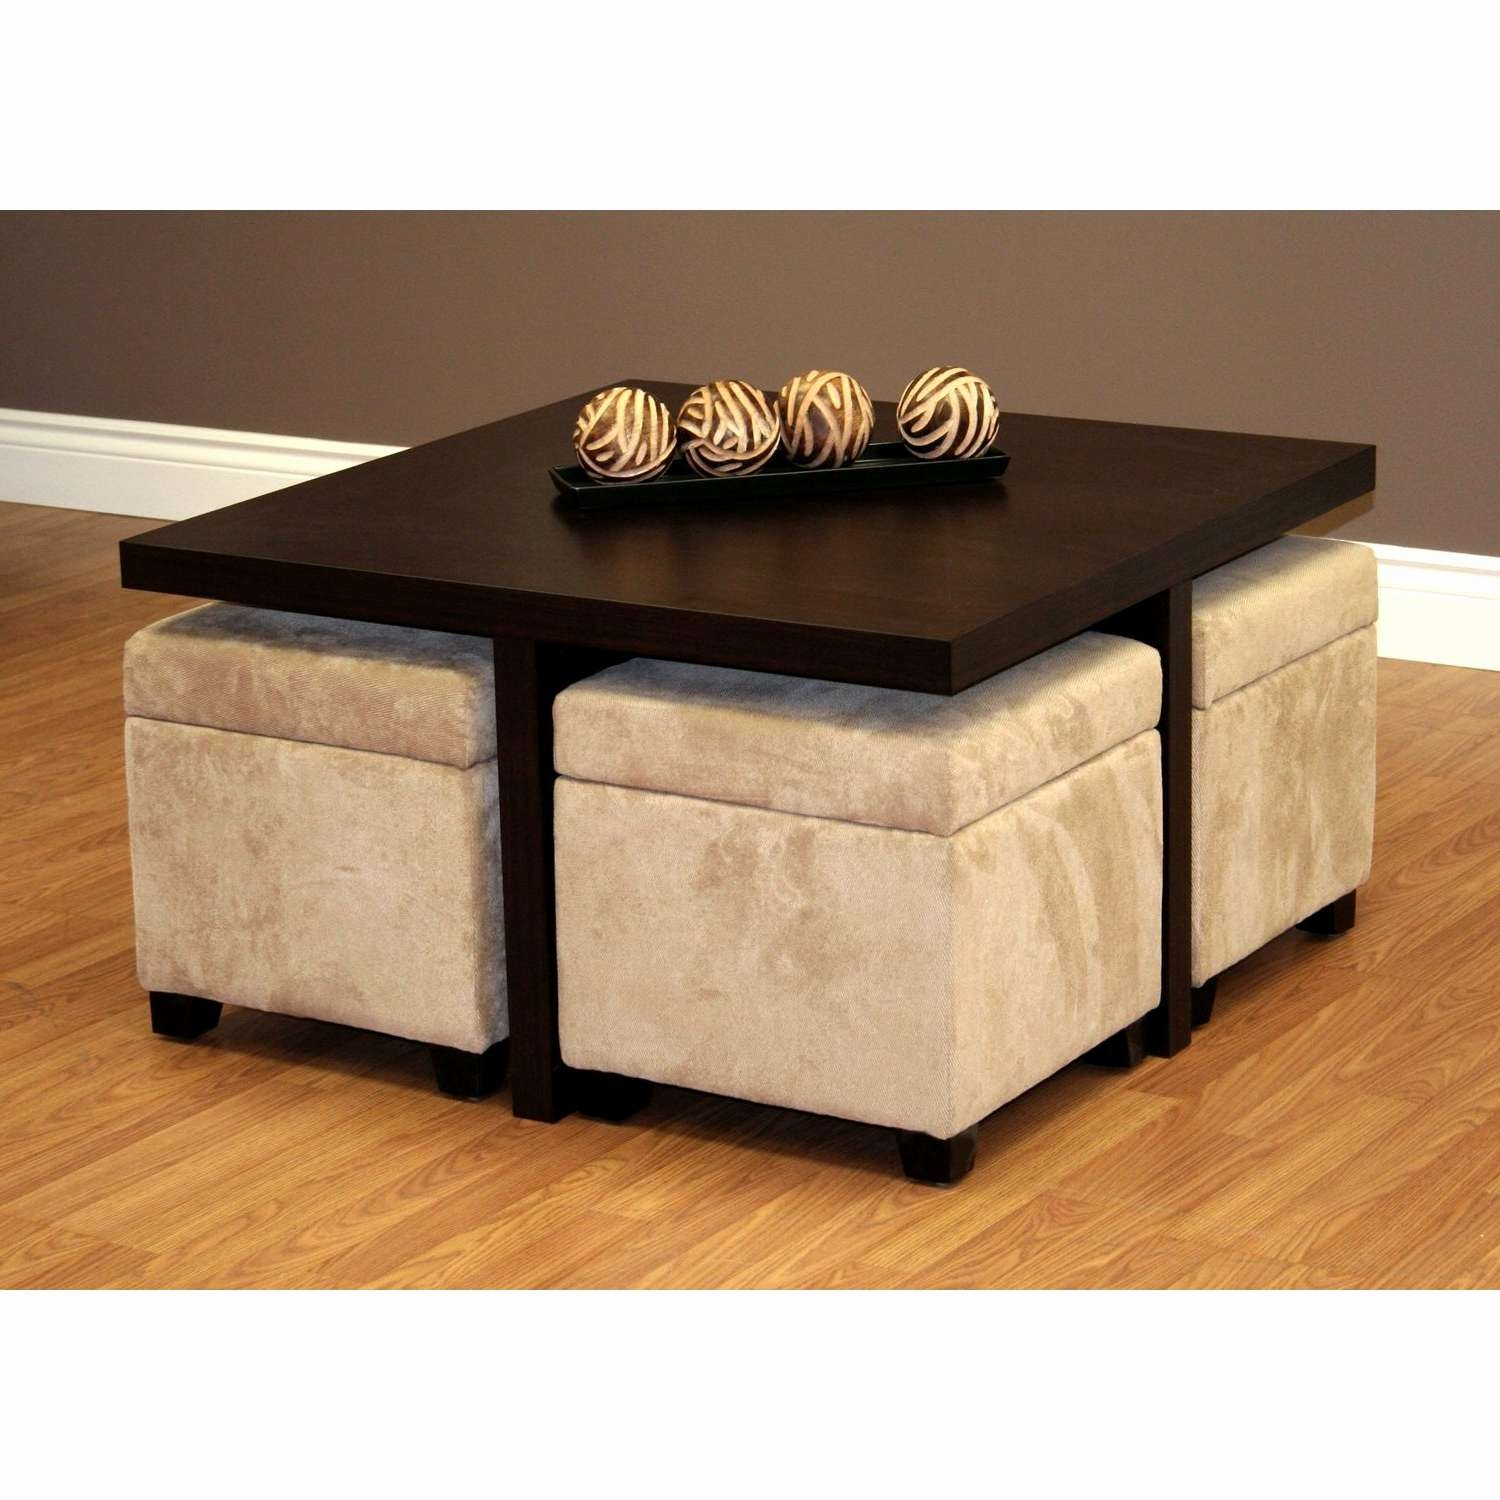 54 Unique Modern Coffee Table With Storage – Home Furniture Ideas Intended For Best And Newest Coffee Tables With Box Storage (Gallery 16 of 20)